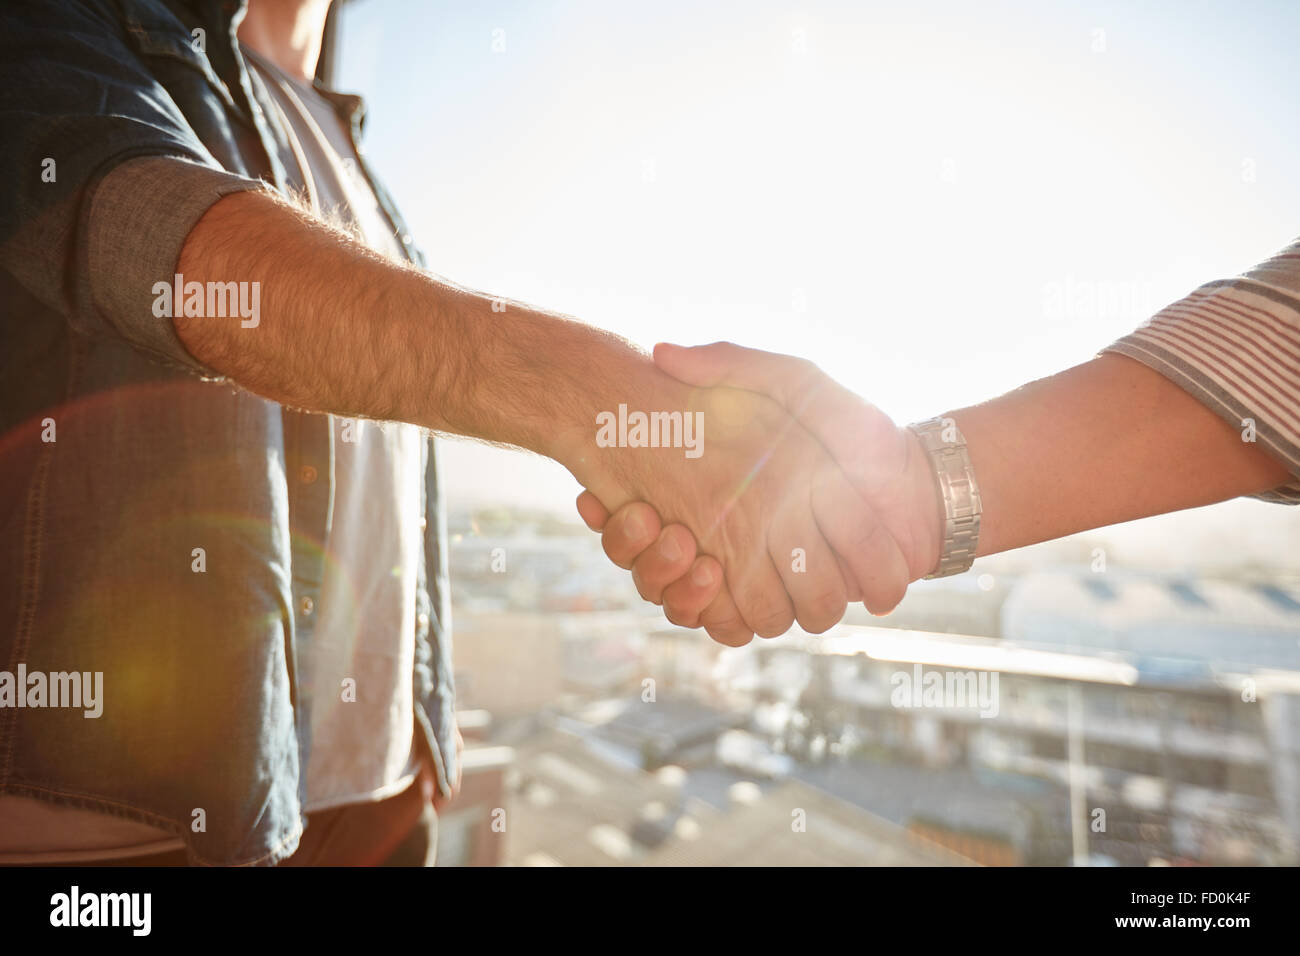 Closeup of two shaking male hands with sun flare. Focus on handshake against cityscape. - Stock Image